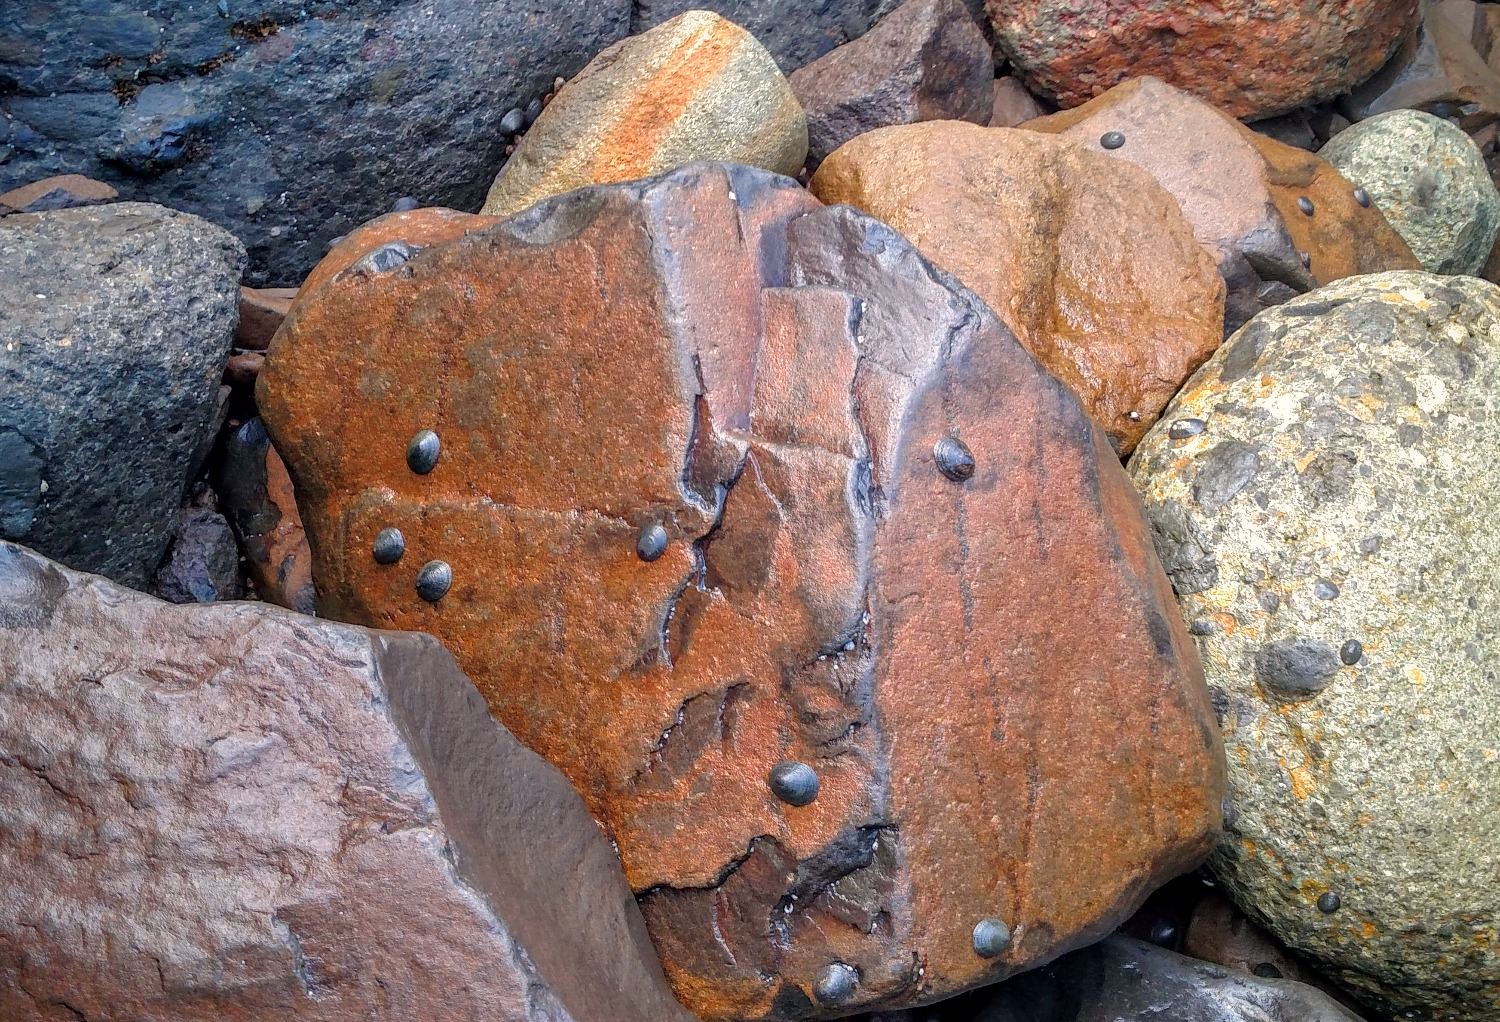 Boulders with Limpets